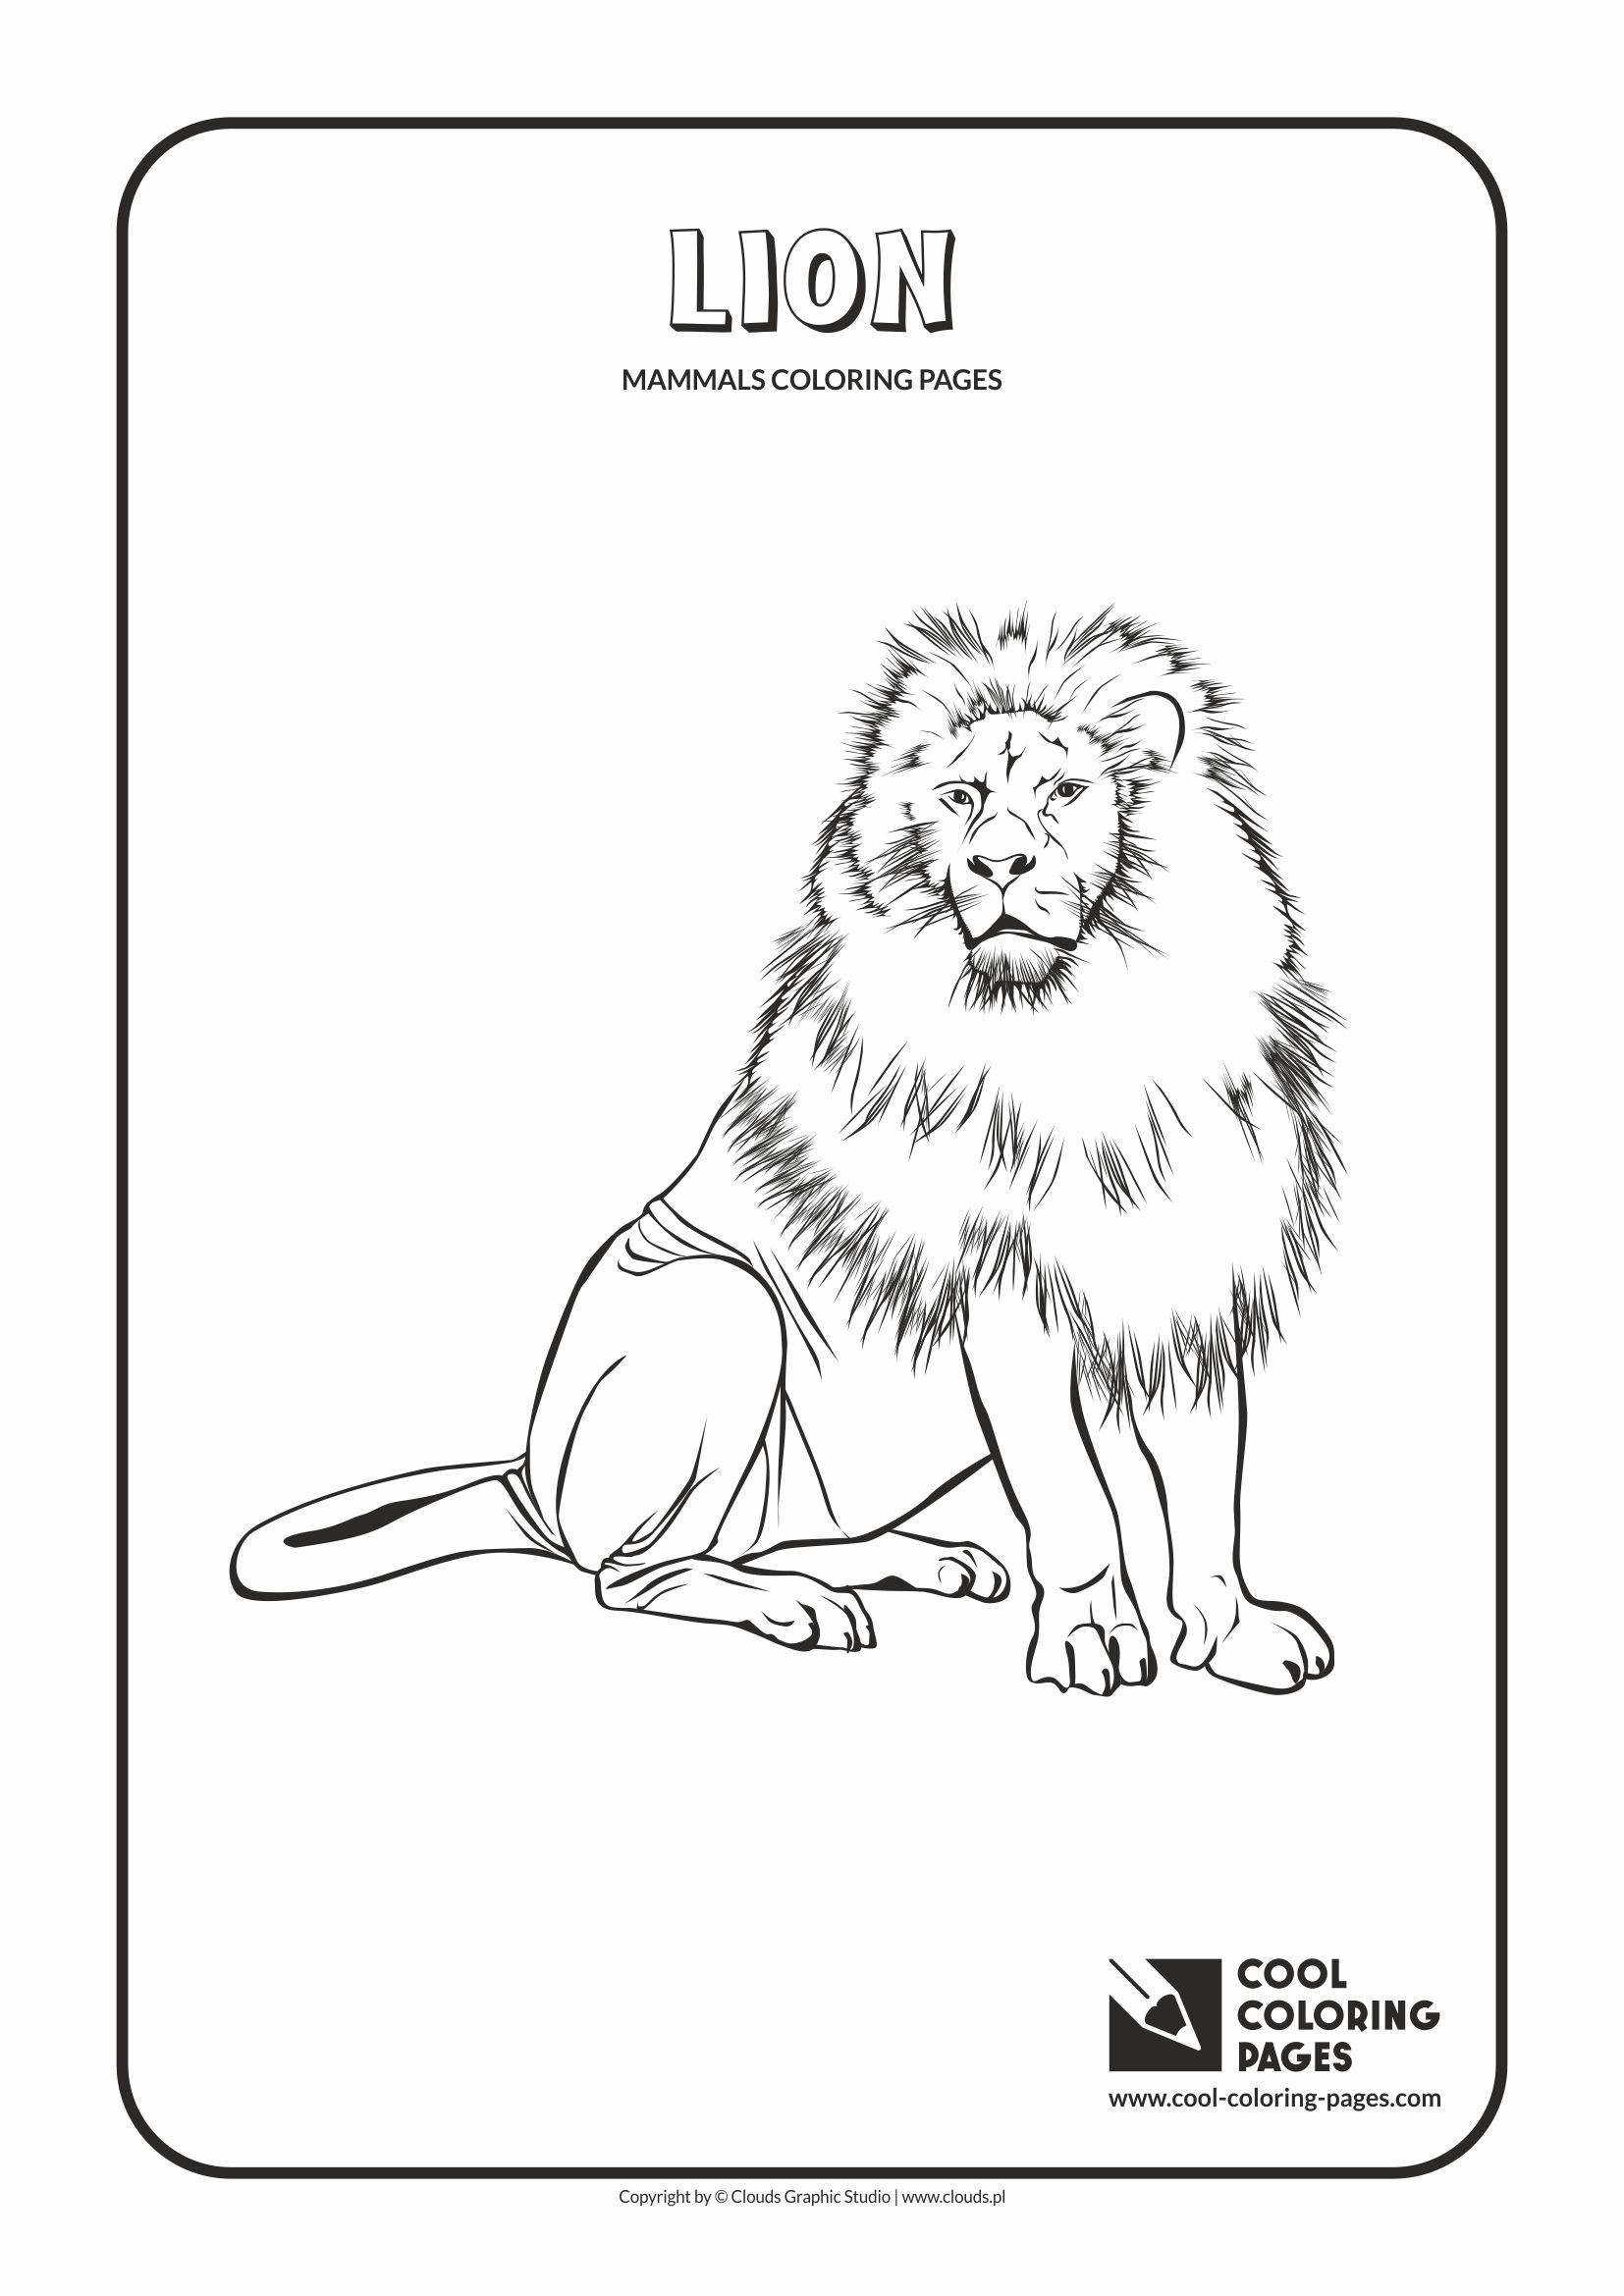 Cool Coloring Pages - Animals / Lion / Coloring page with lion